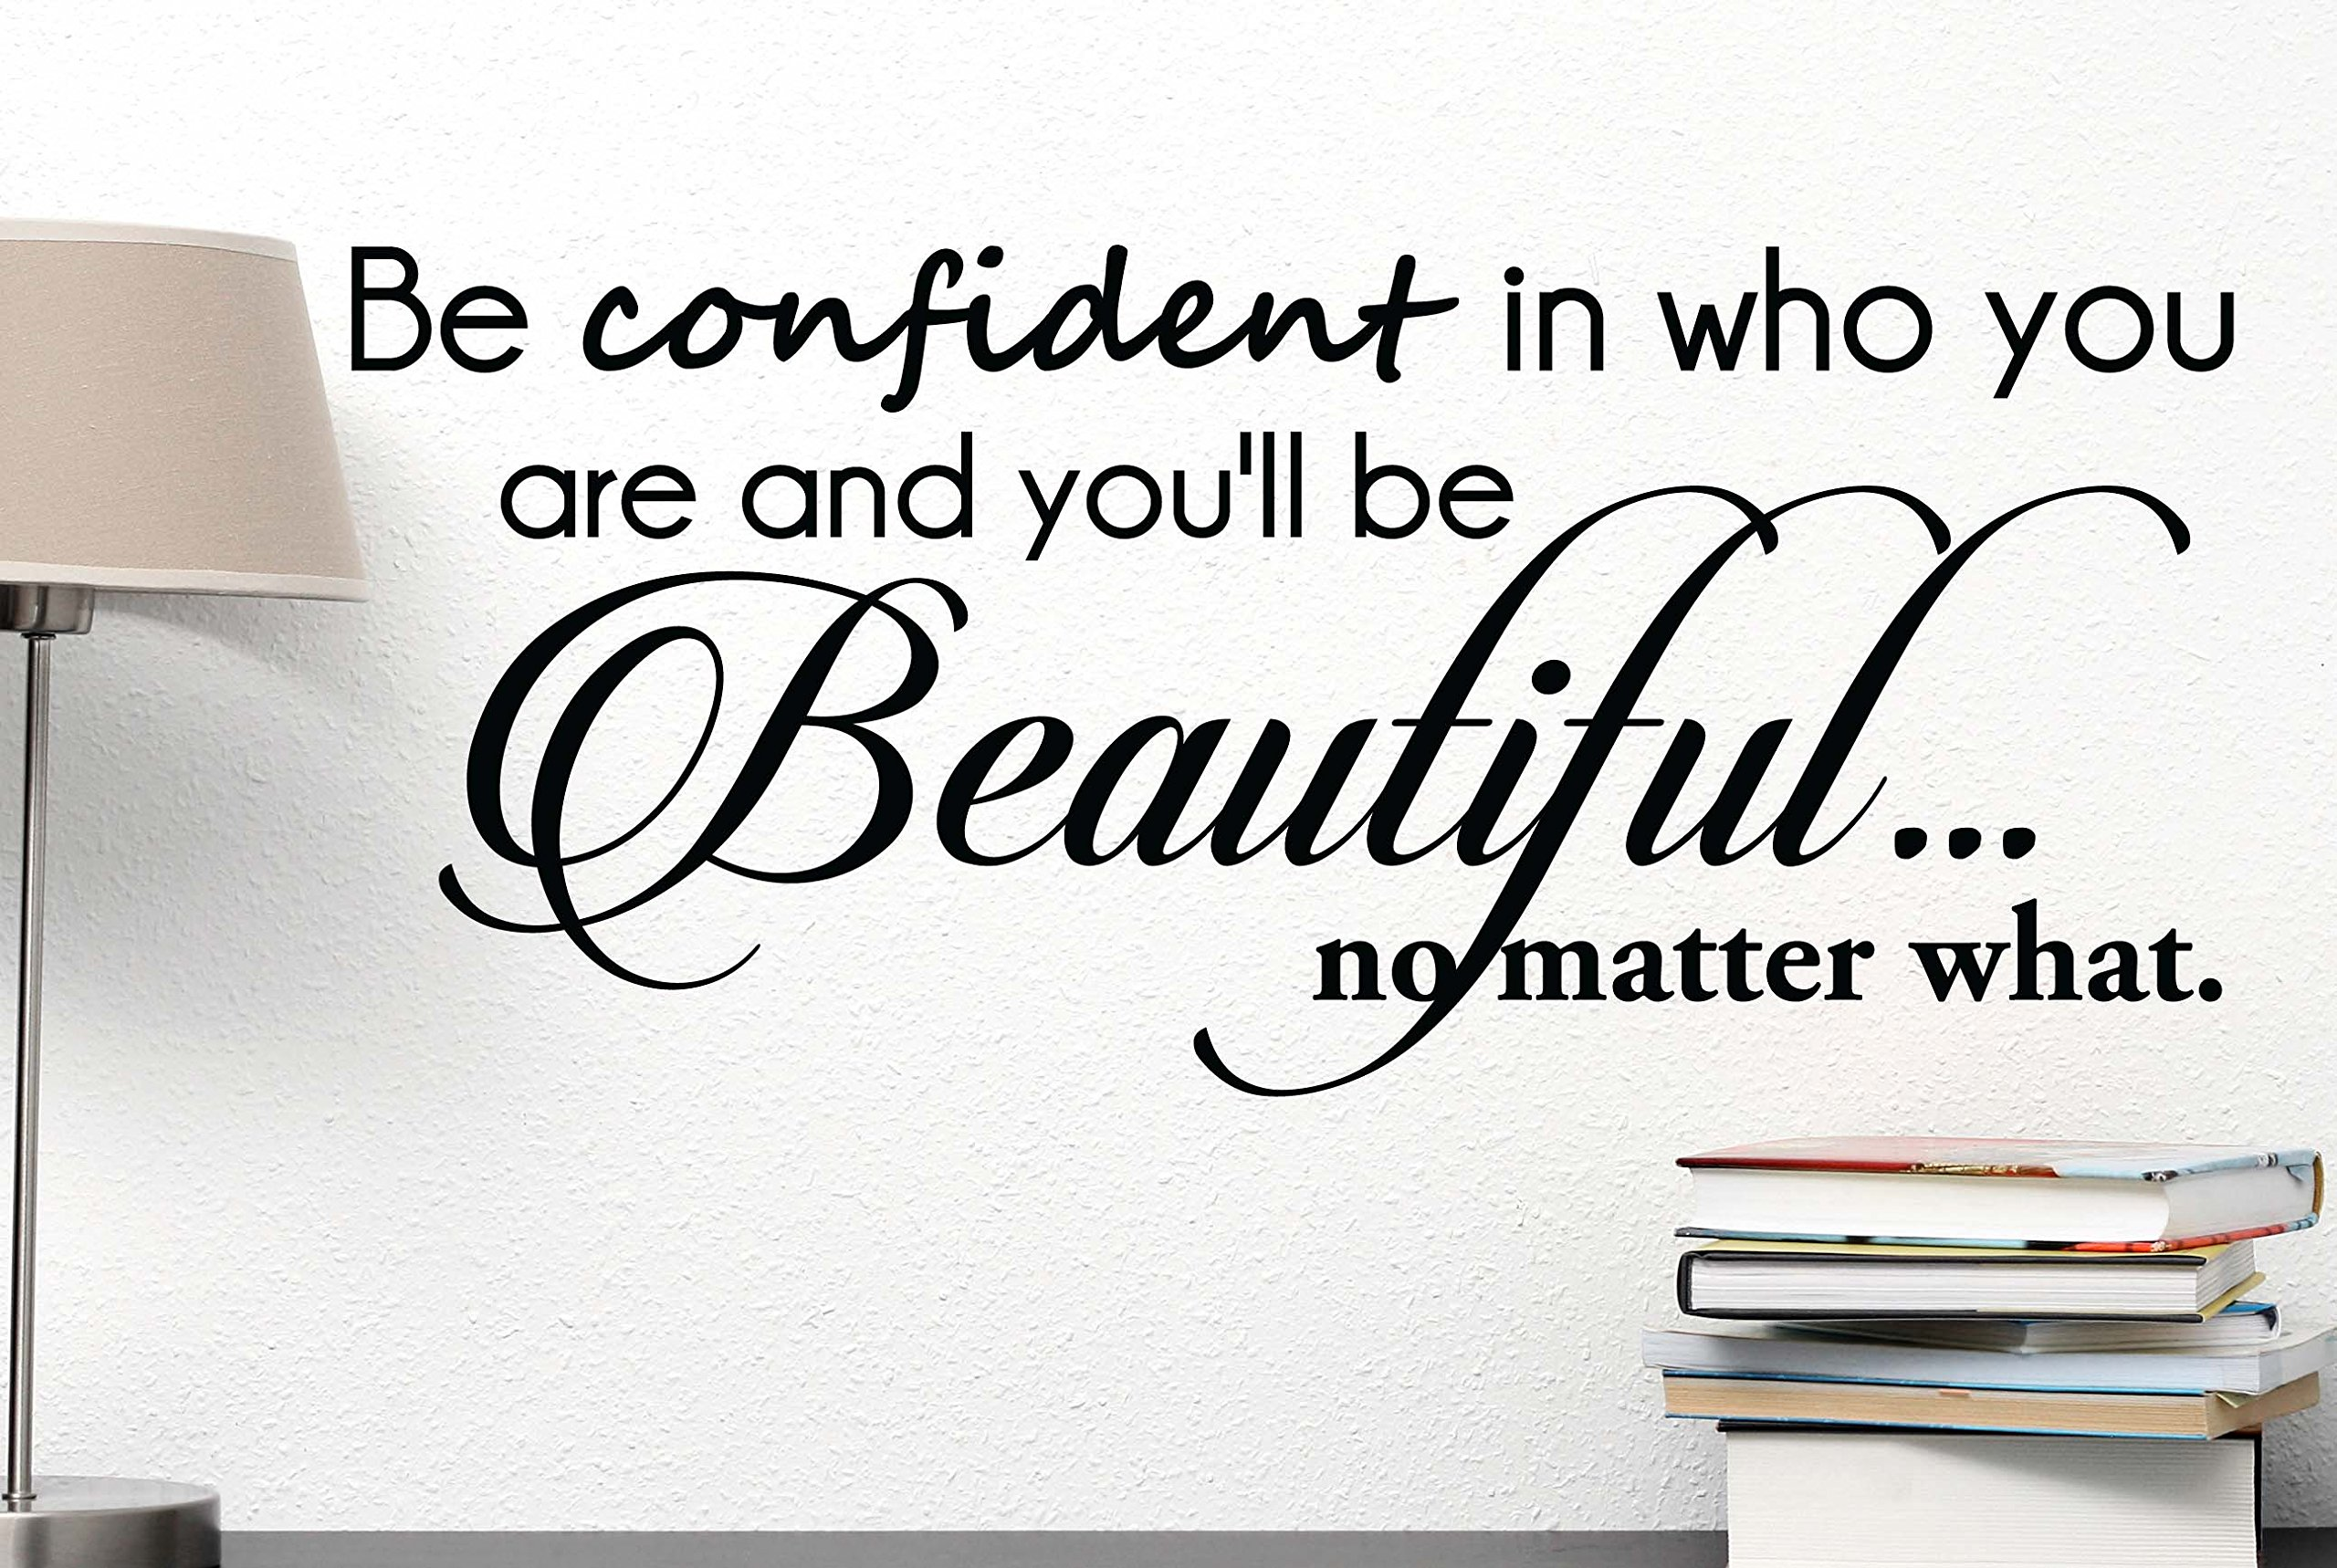 Be confident in who you are and you'll be beautiful no matter what. cute Wall Vinyl Decal Spa inspirational Quote Art Saying lettering motivational gym Sticker stencil wall decor art